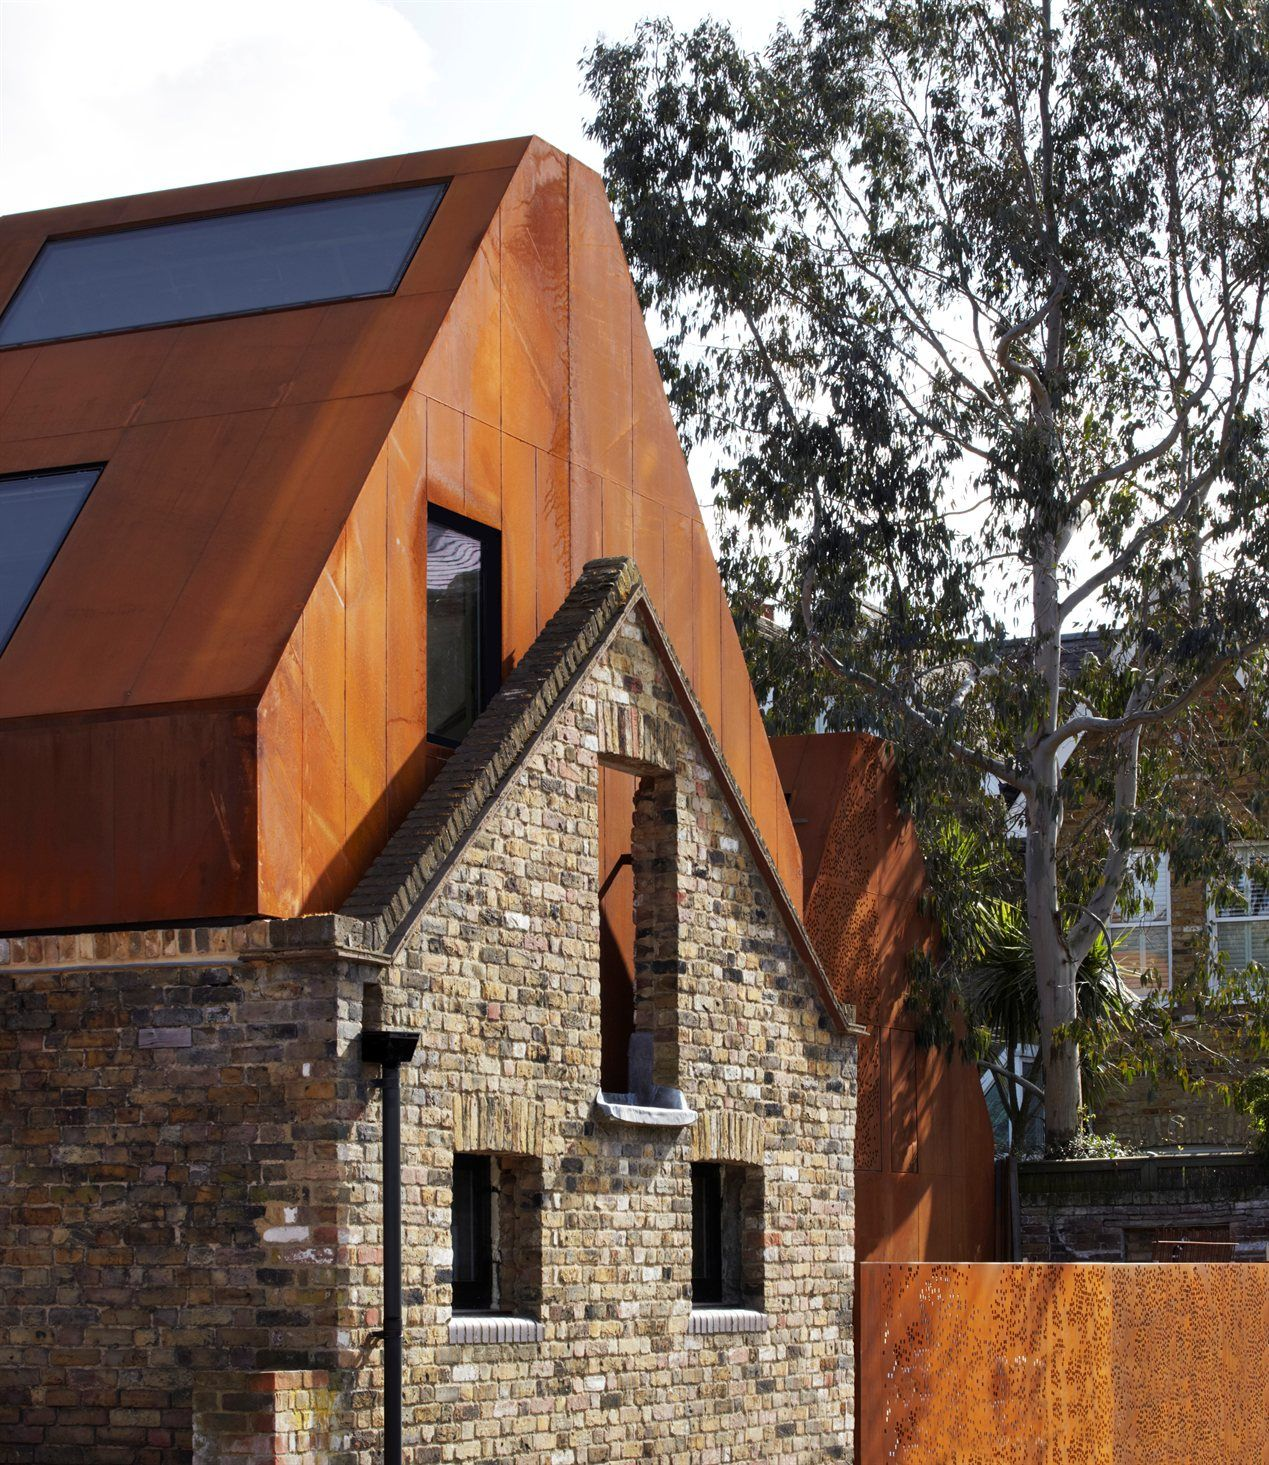 Kew House Jack Hobhouse I Love The Perforated Weathering Steel Cladding And The Old Brick Work Renovation Architecture Architecture Modern Architecture